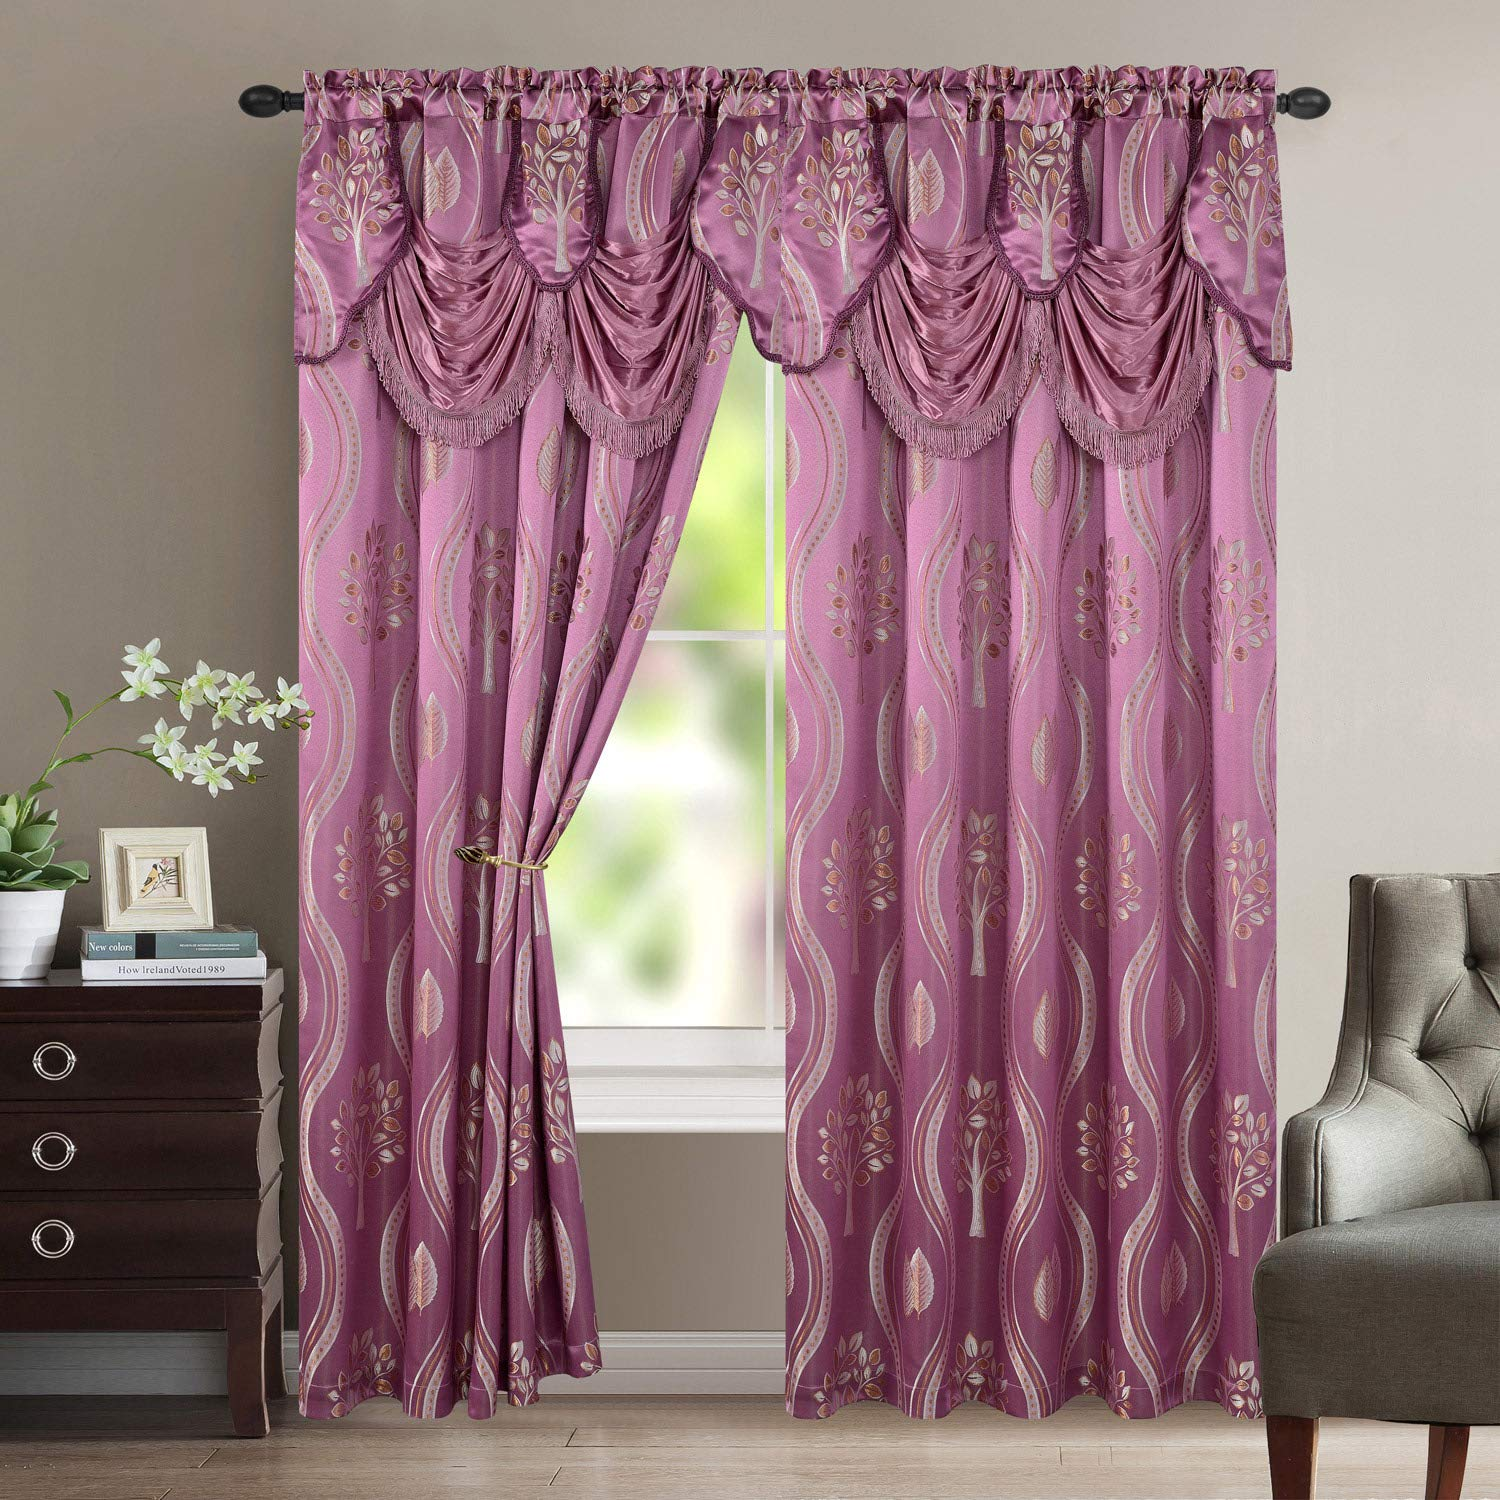 Luxury Home Textile Aurora Tree Leaf Jacquard Window Panel with Attached Valance, Premium Quality, Beautiful Tree Leaf Design, Vibrant Colors, 100% Polyester, 54x84 Inches Per Panel, 2-Pack (Lilac) by Luxury Home Textile